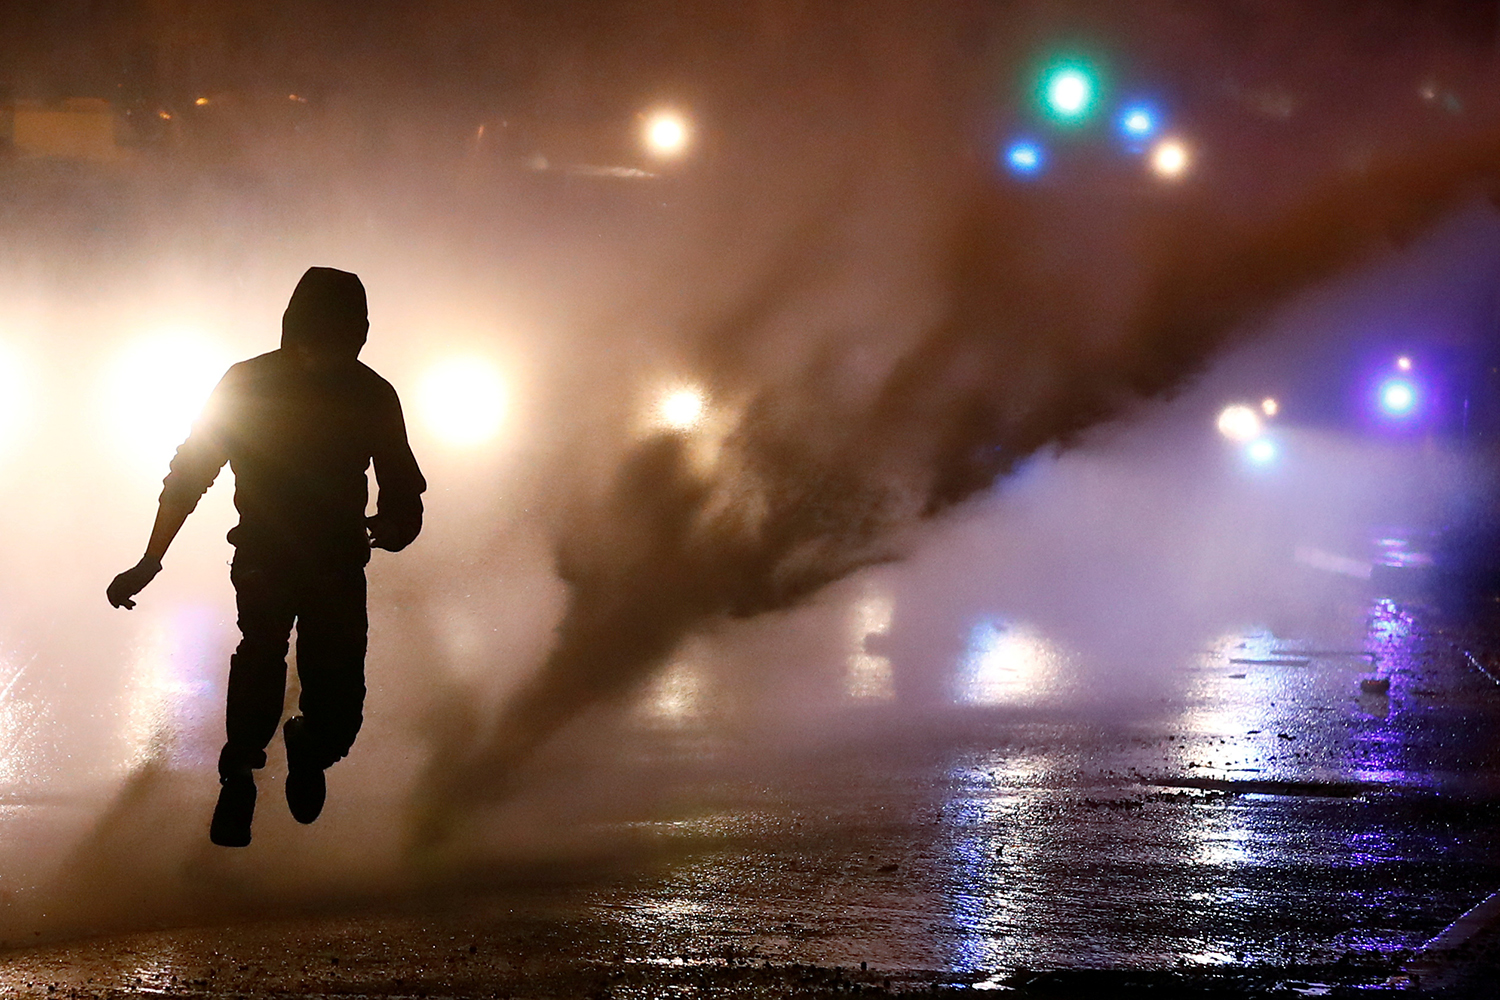 A rioter leaps as police use a water cannon during protests in Belfast, Northern Ireland, on April 8. Jason Cairnduff/Reuters